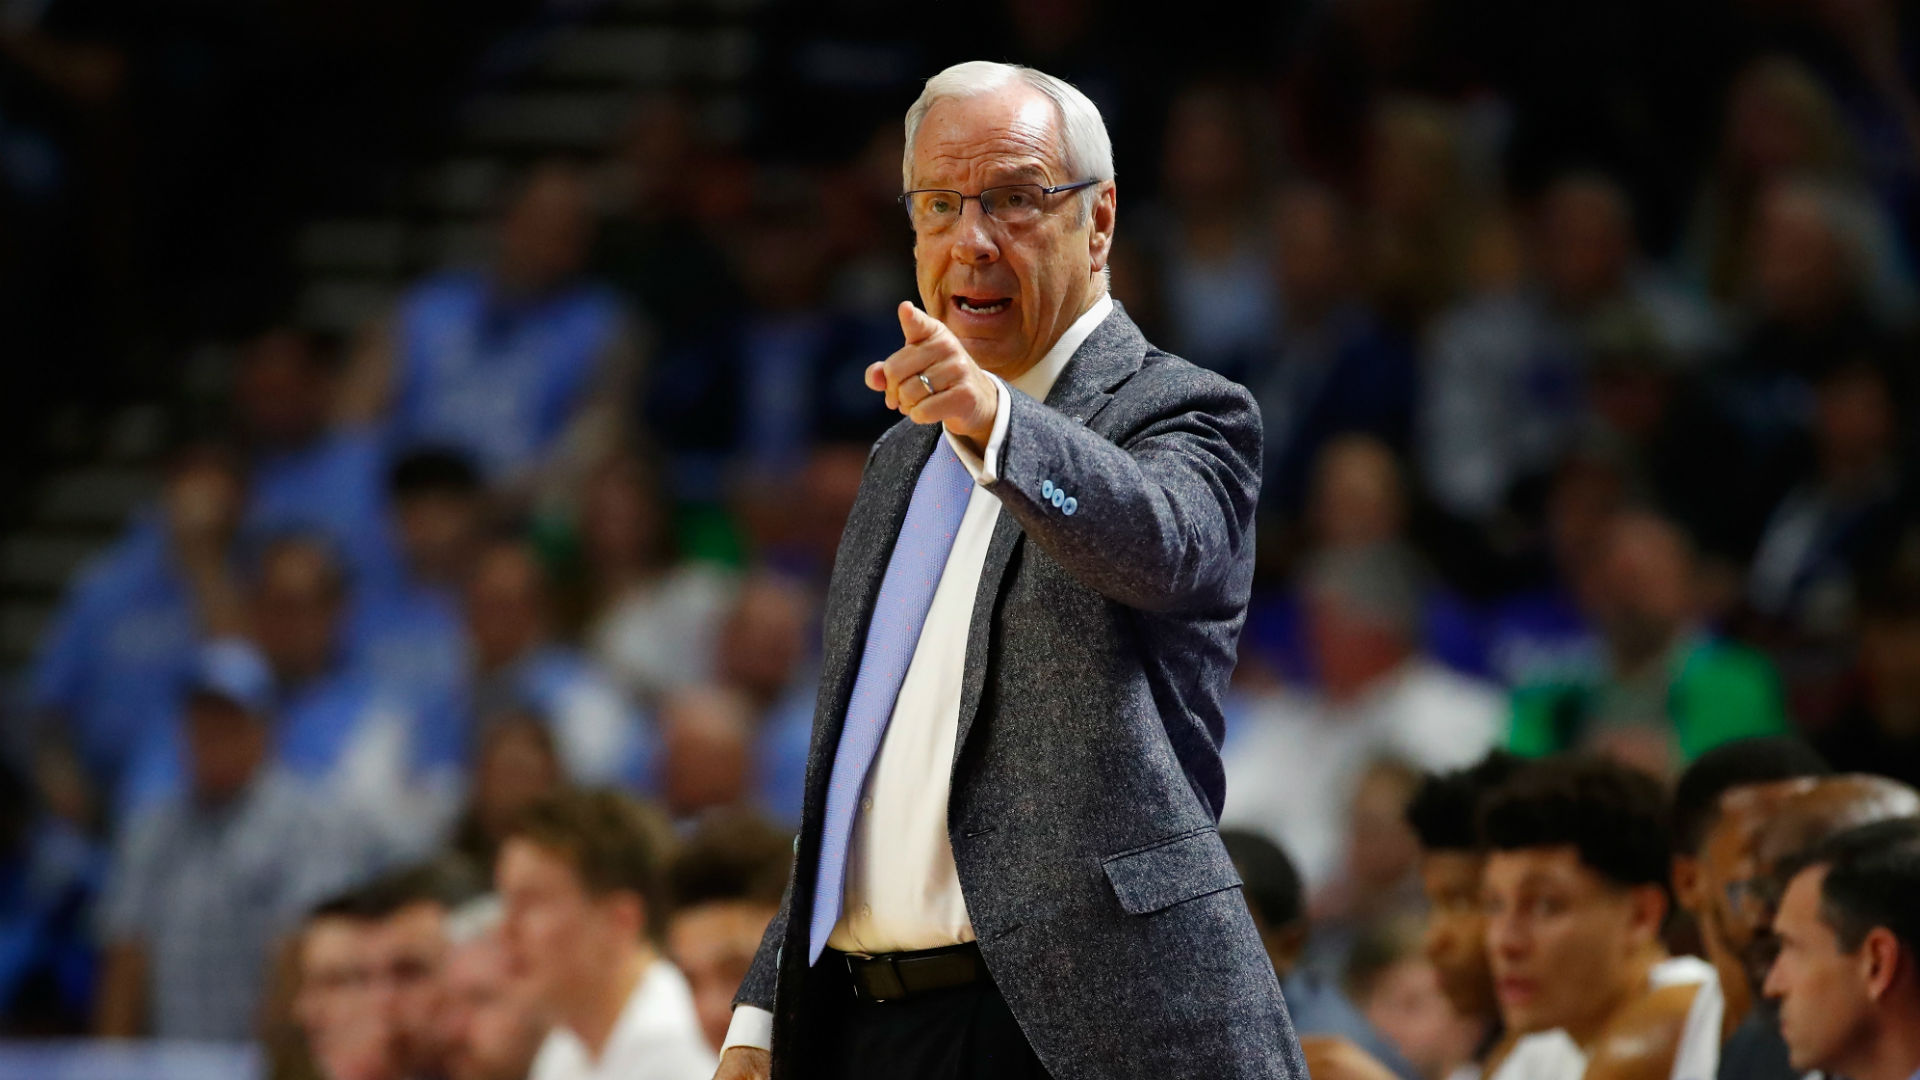 With the retirement of Roy Williams, college basketball has lost a great coach, though not everyone realizes